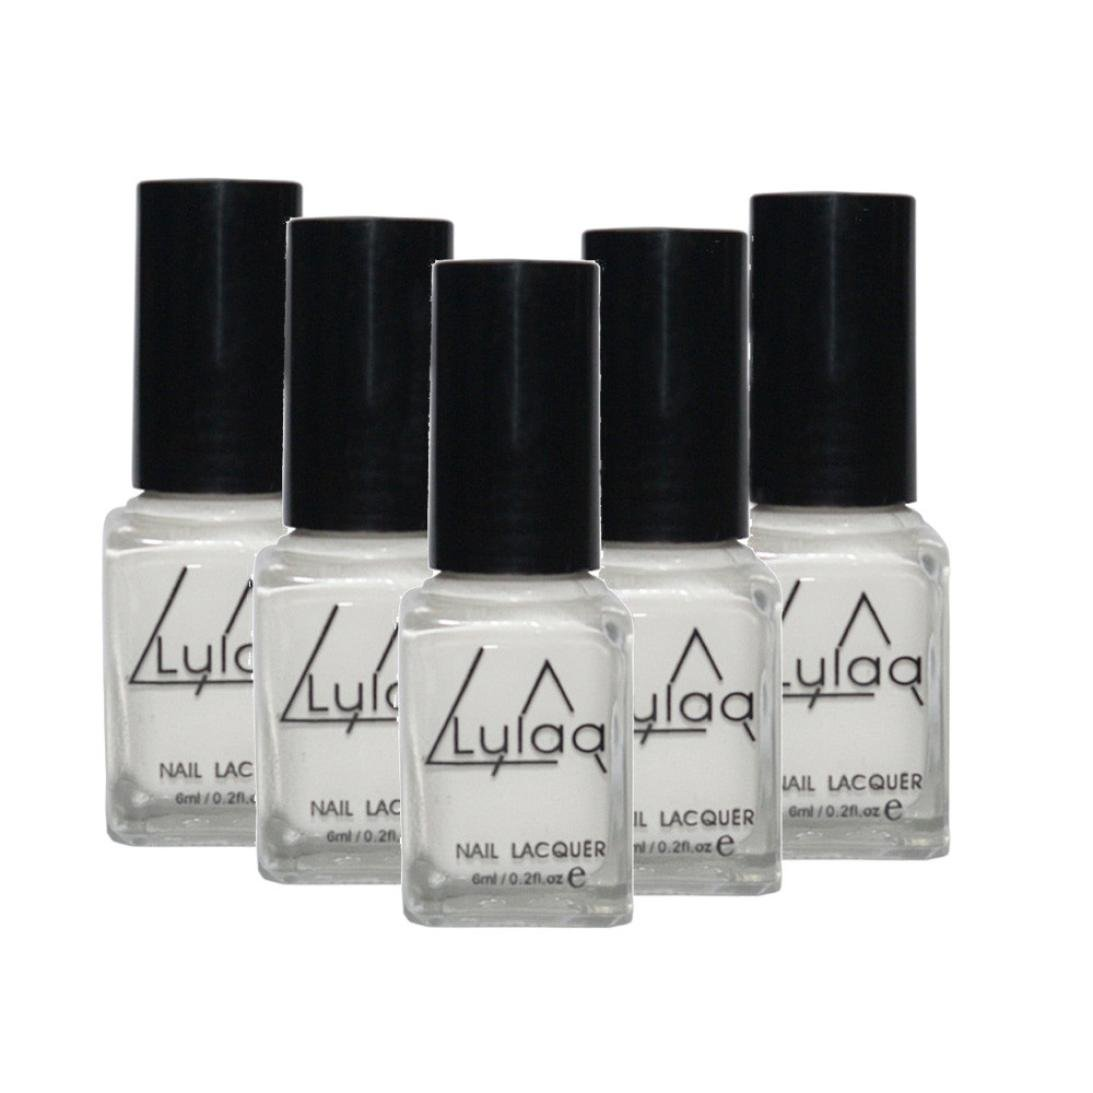 Alonea lulaa 5pcs/Set Peel Off Liquid Tape Latex Tape Peel Off Base Coat Nail Art Liquid Palisade